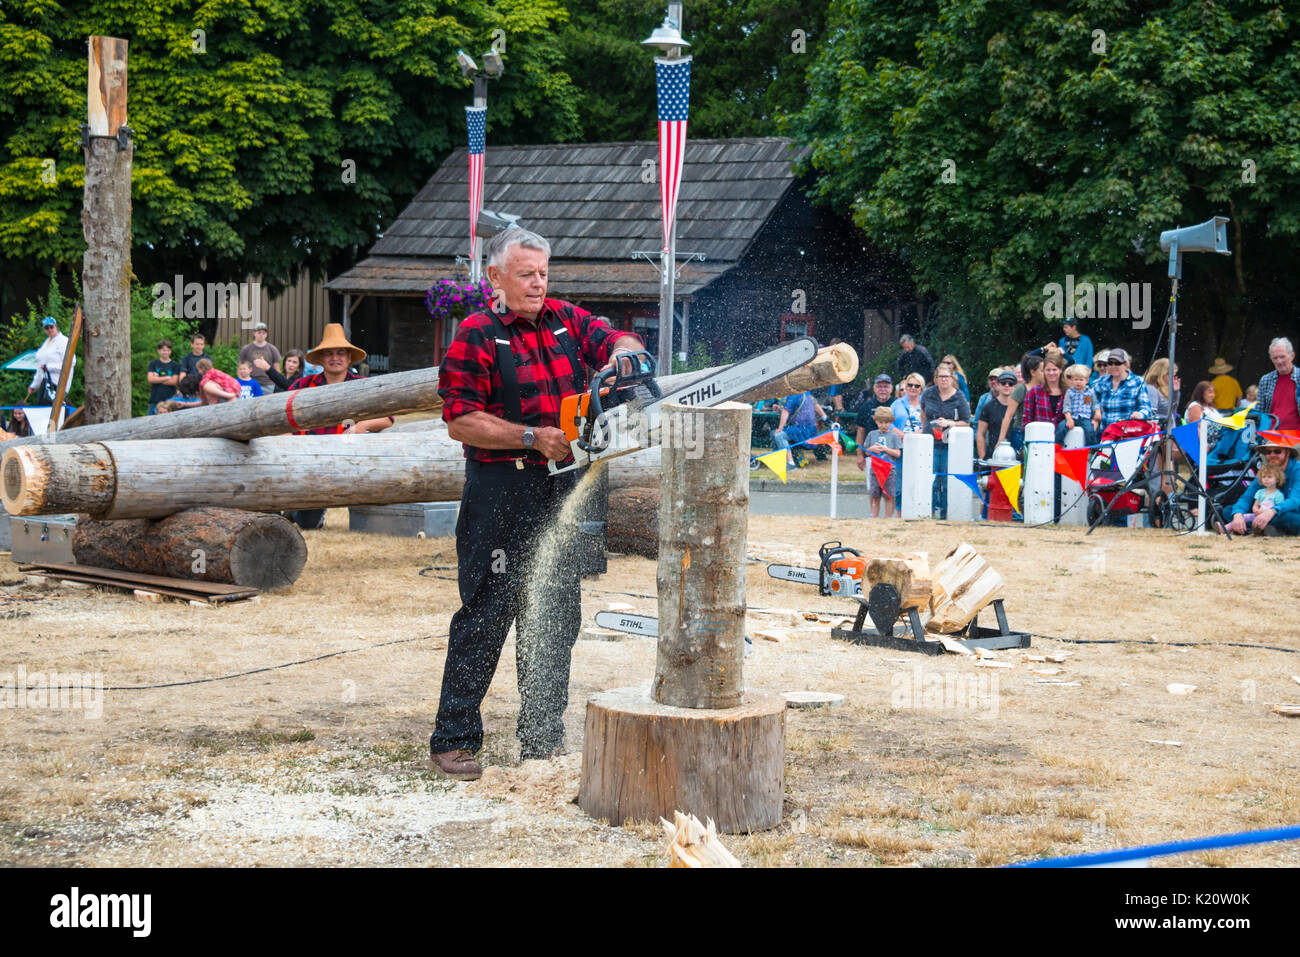 Lumberjack Skill Demonstration Chainsaw Art Evergreen State Fair Monroe Washington - Stock Image